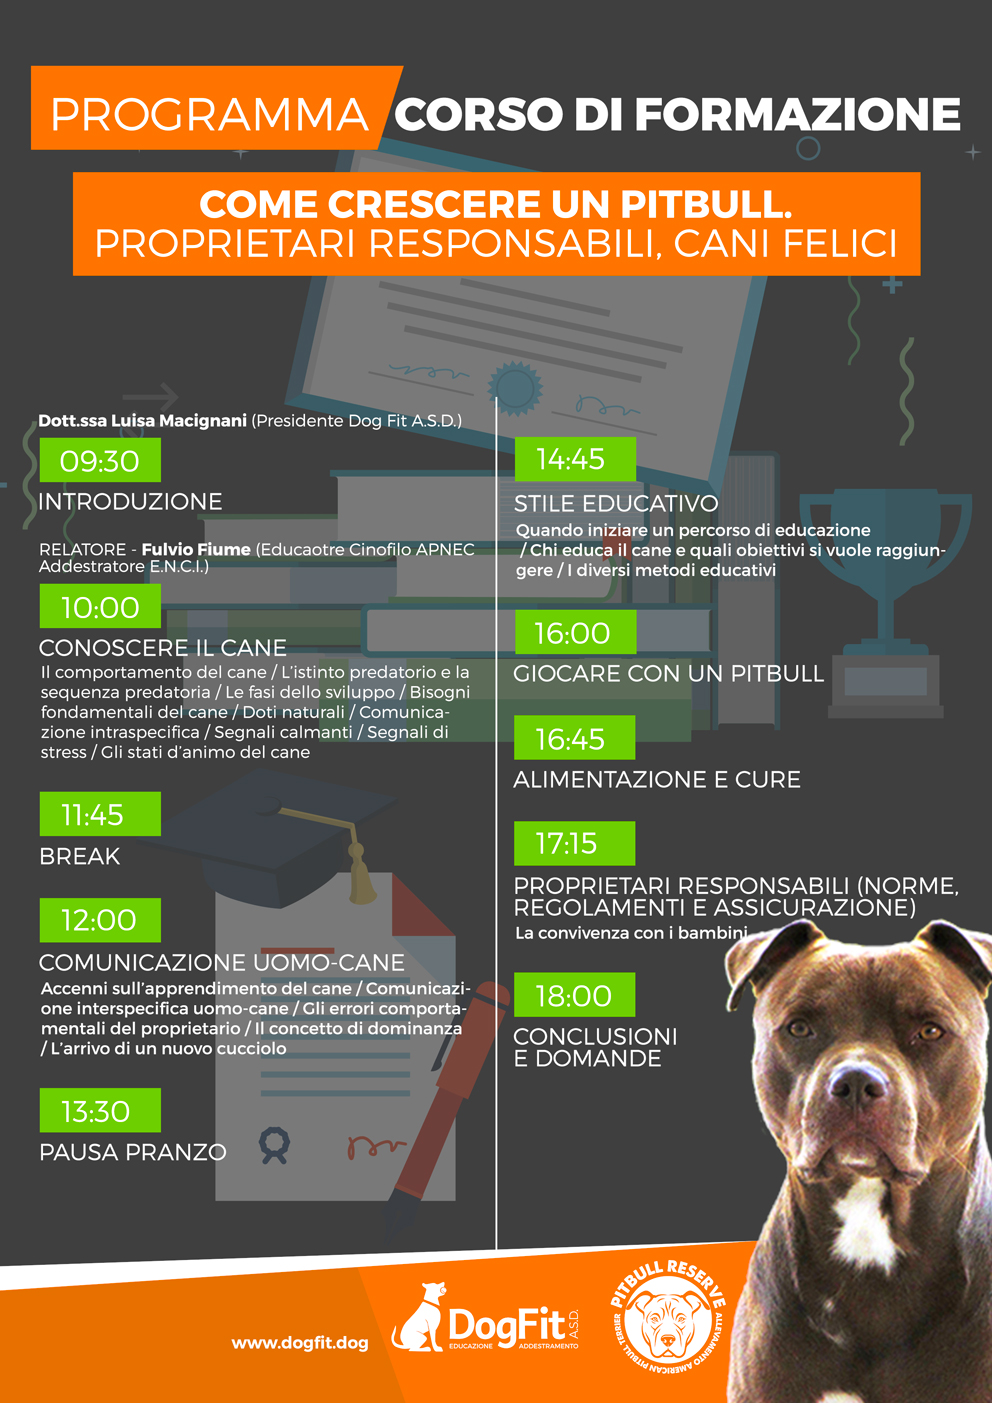 PROGRAMMA-CORSO-PITBULL-DOG-FIT